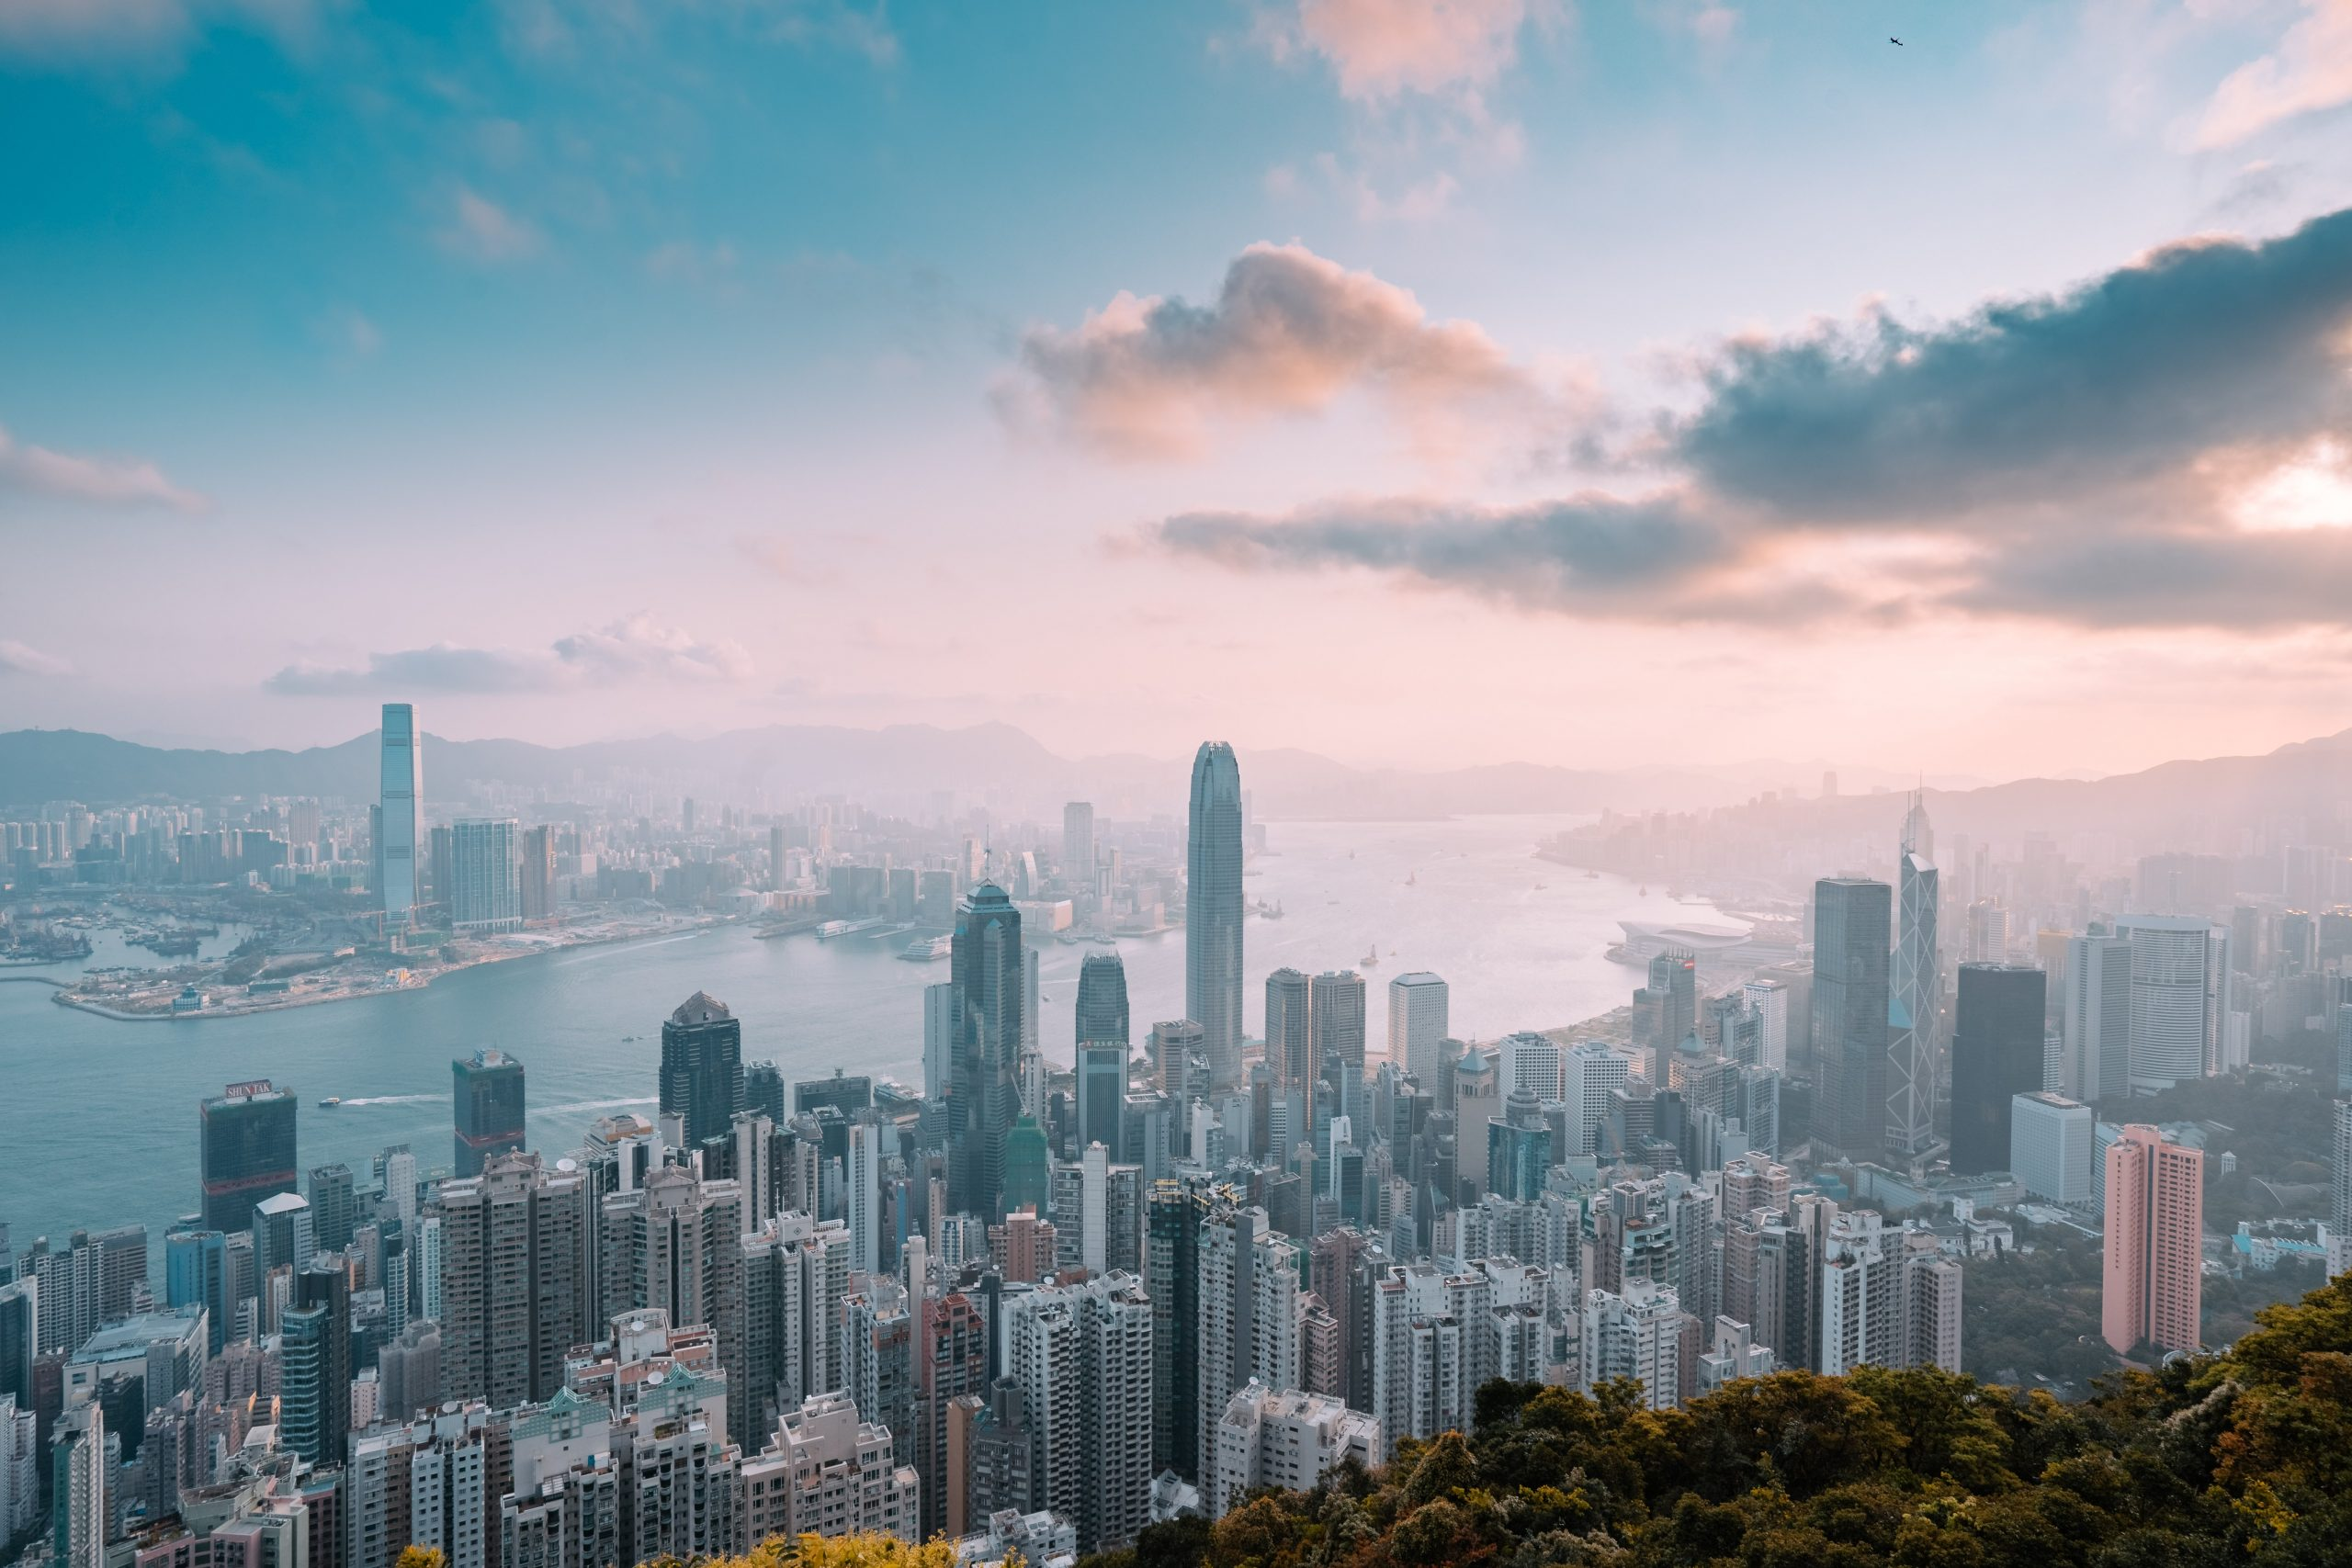 China transformed Hong Kong into a typical mainland city, almost overnight